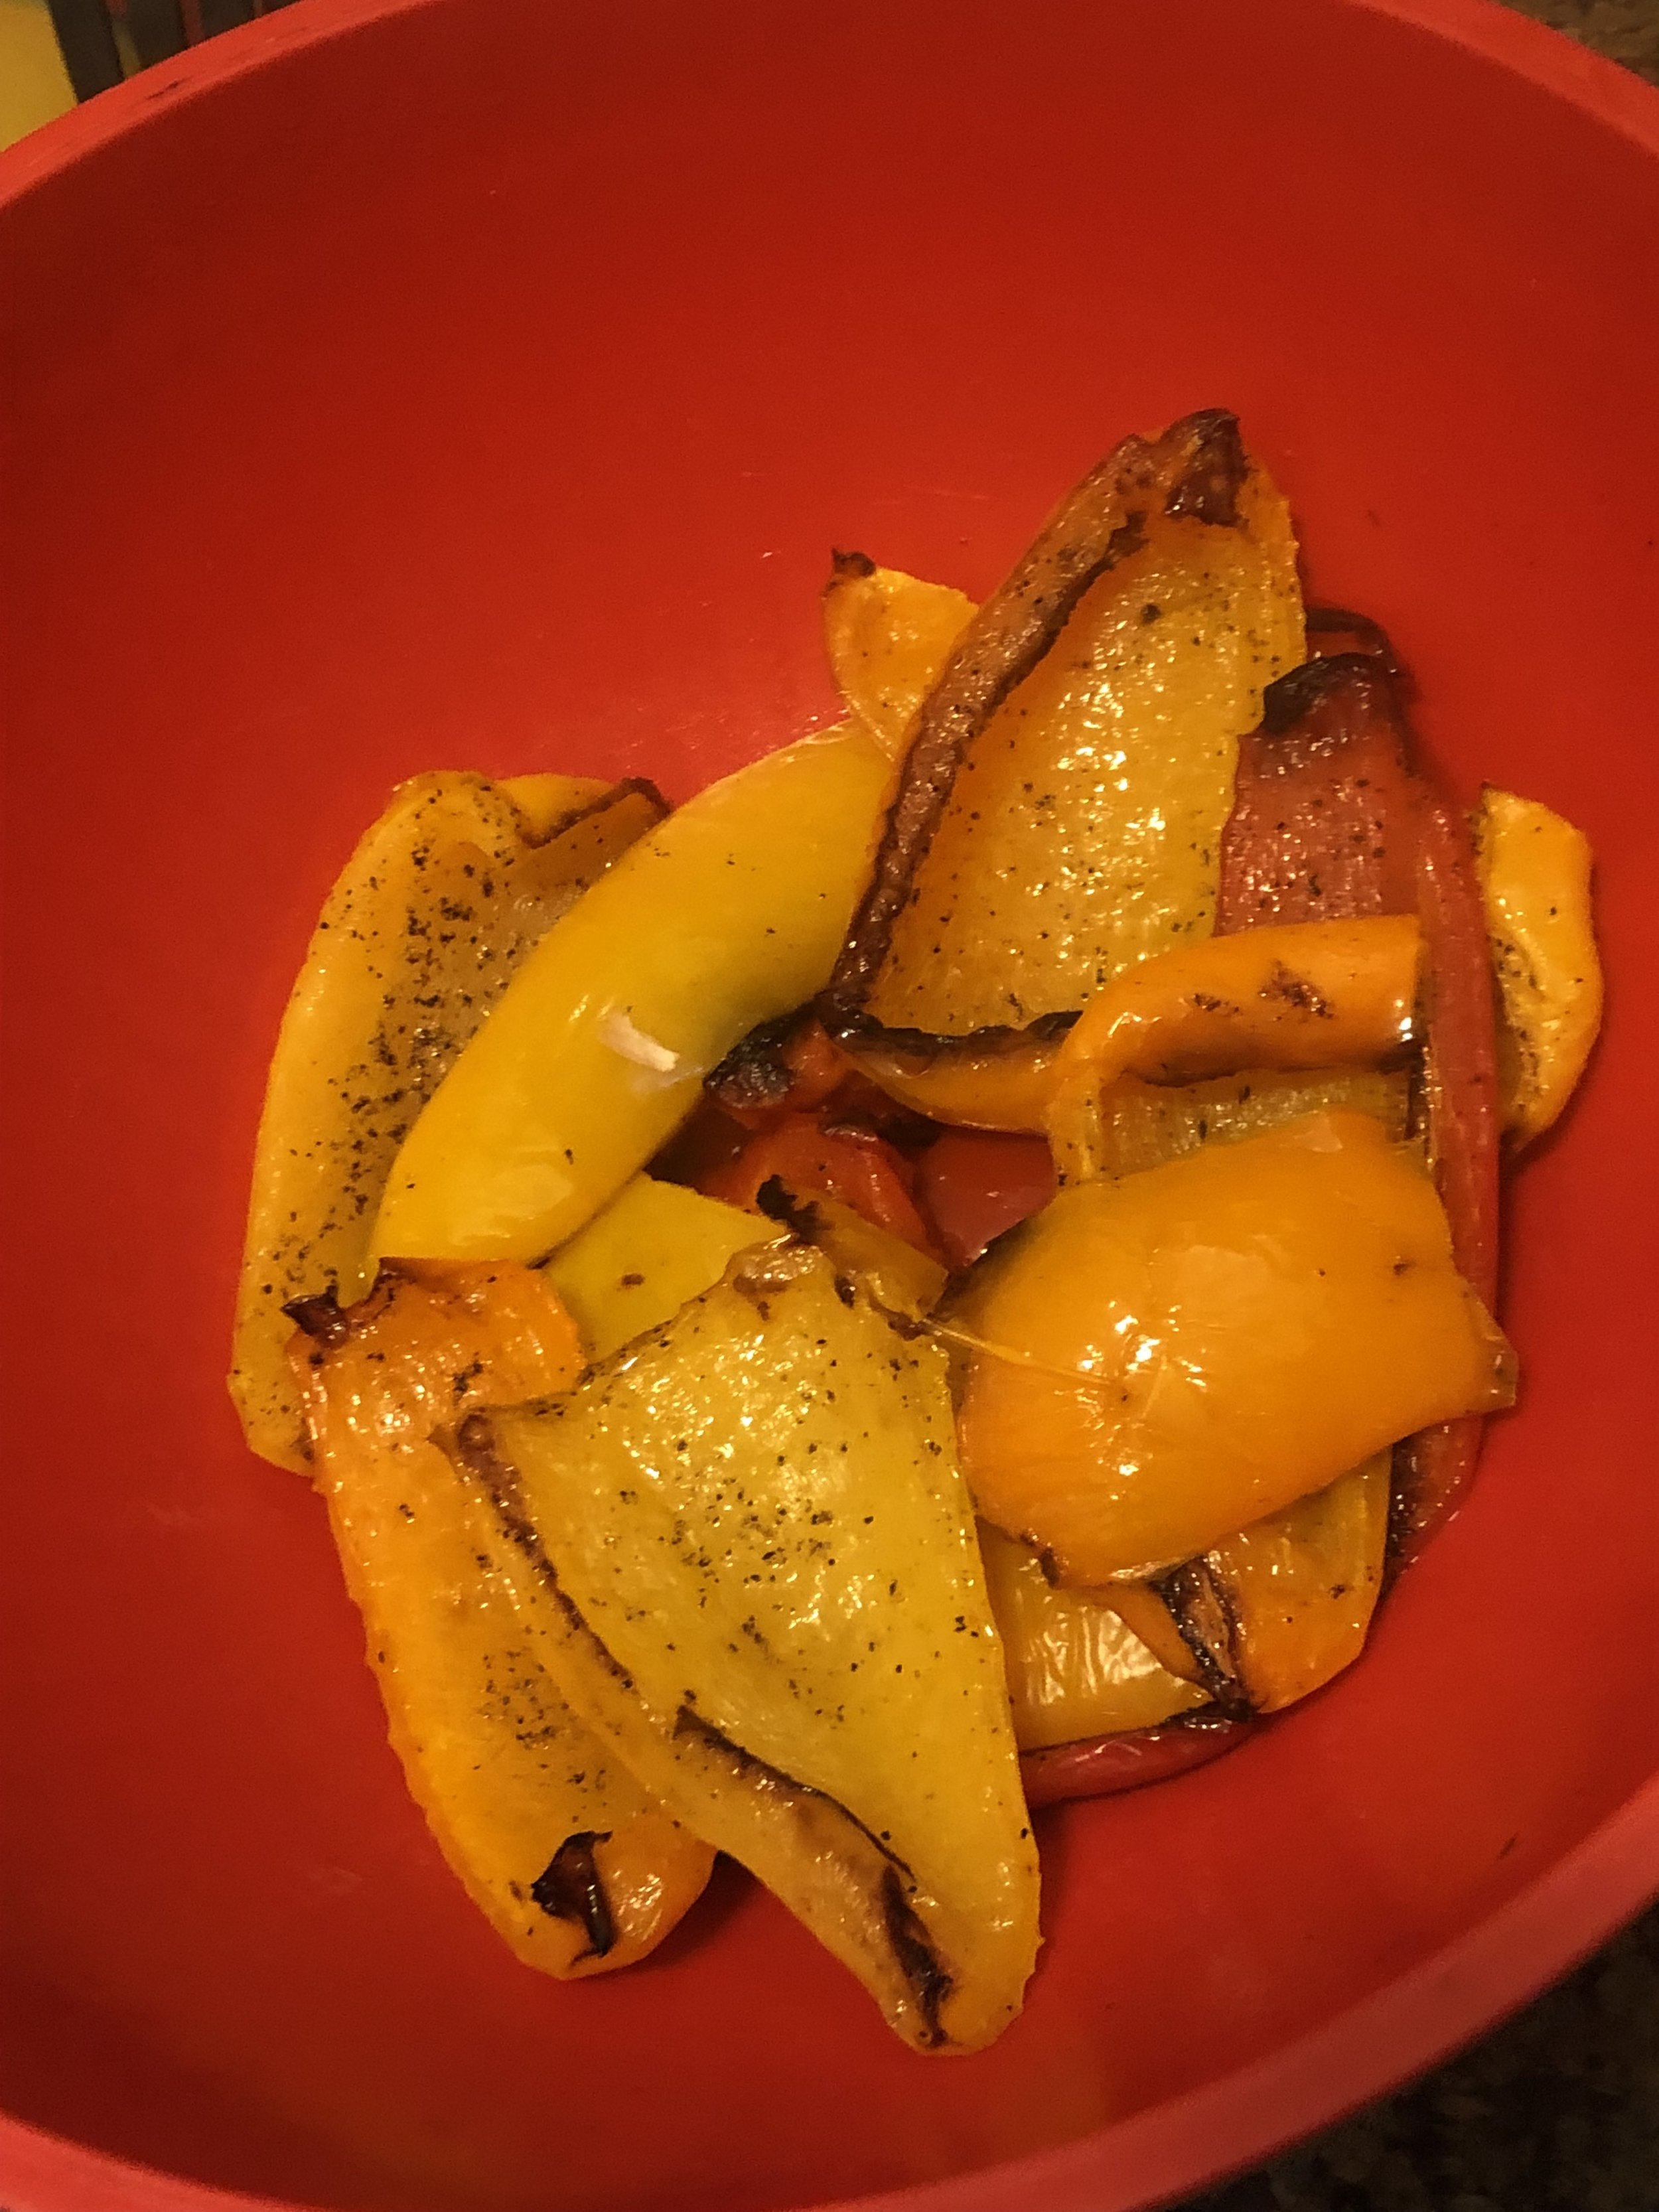 Uncover bell peppers and peel away charred skin from flesh (don't worry about getting every last bit); discard.